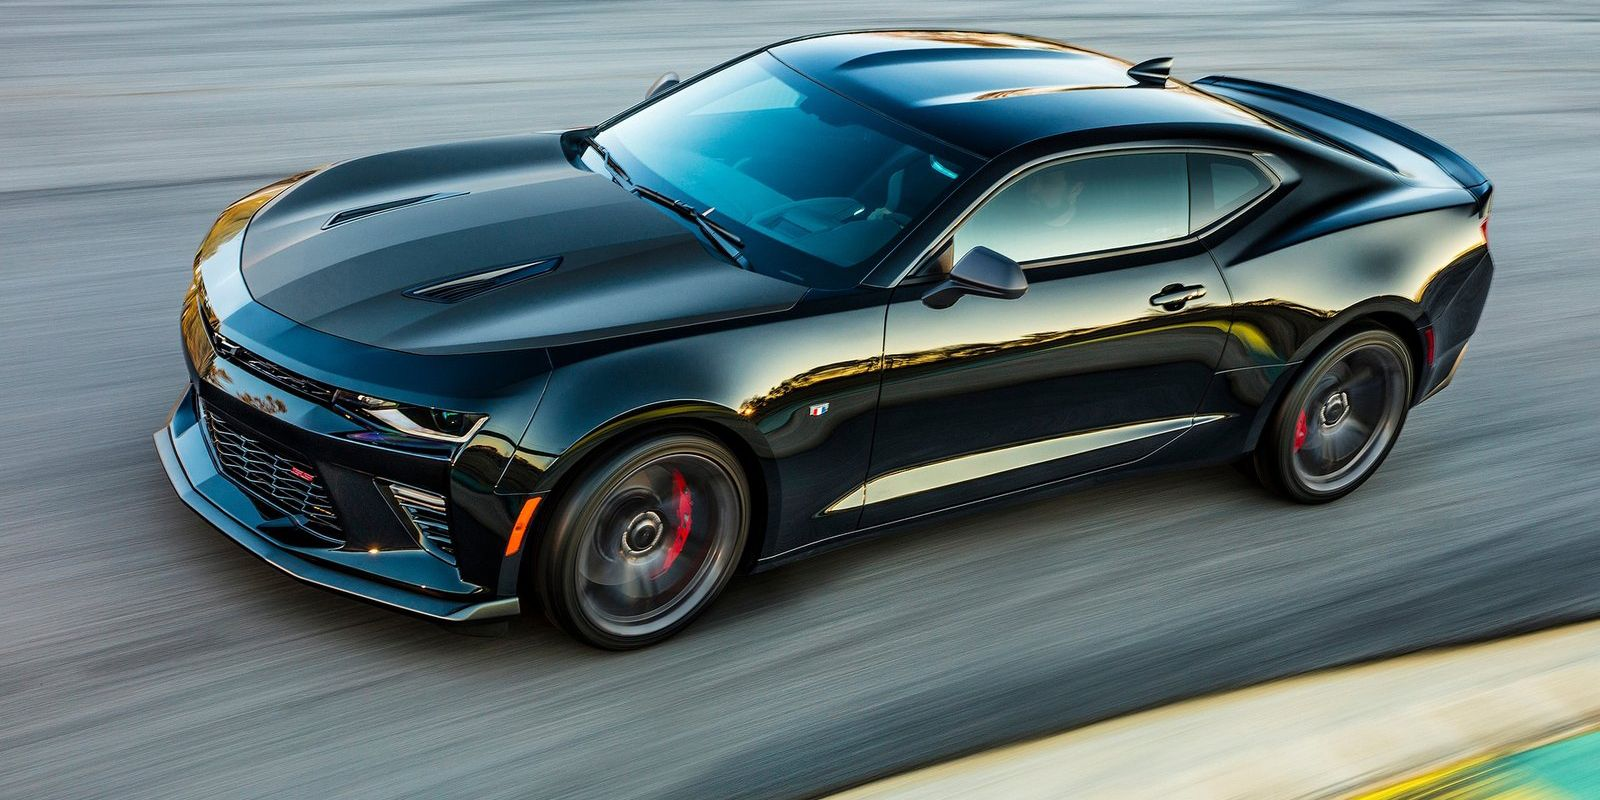 The Best New Performance Cars For Less Than